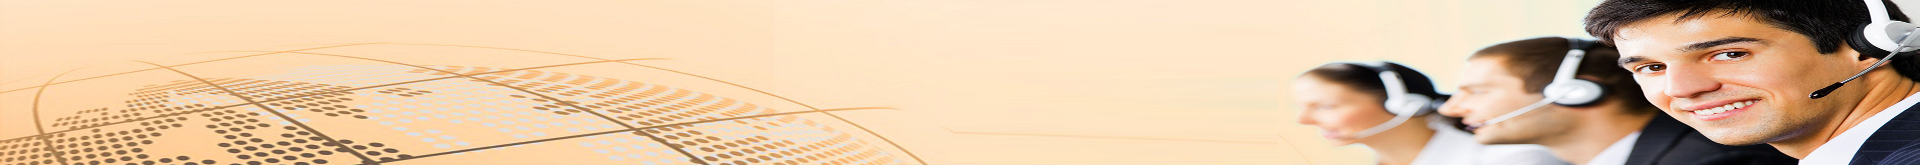 support-banner